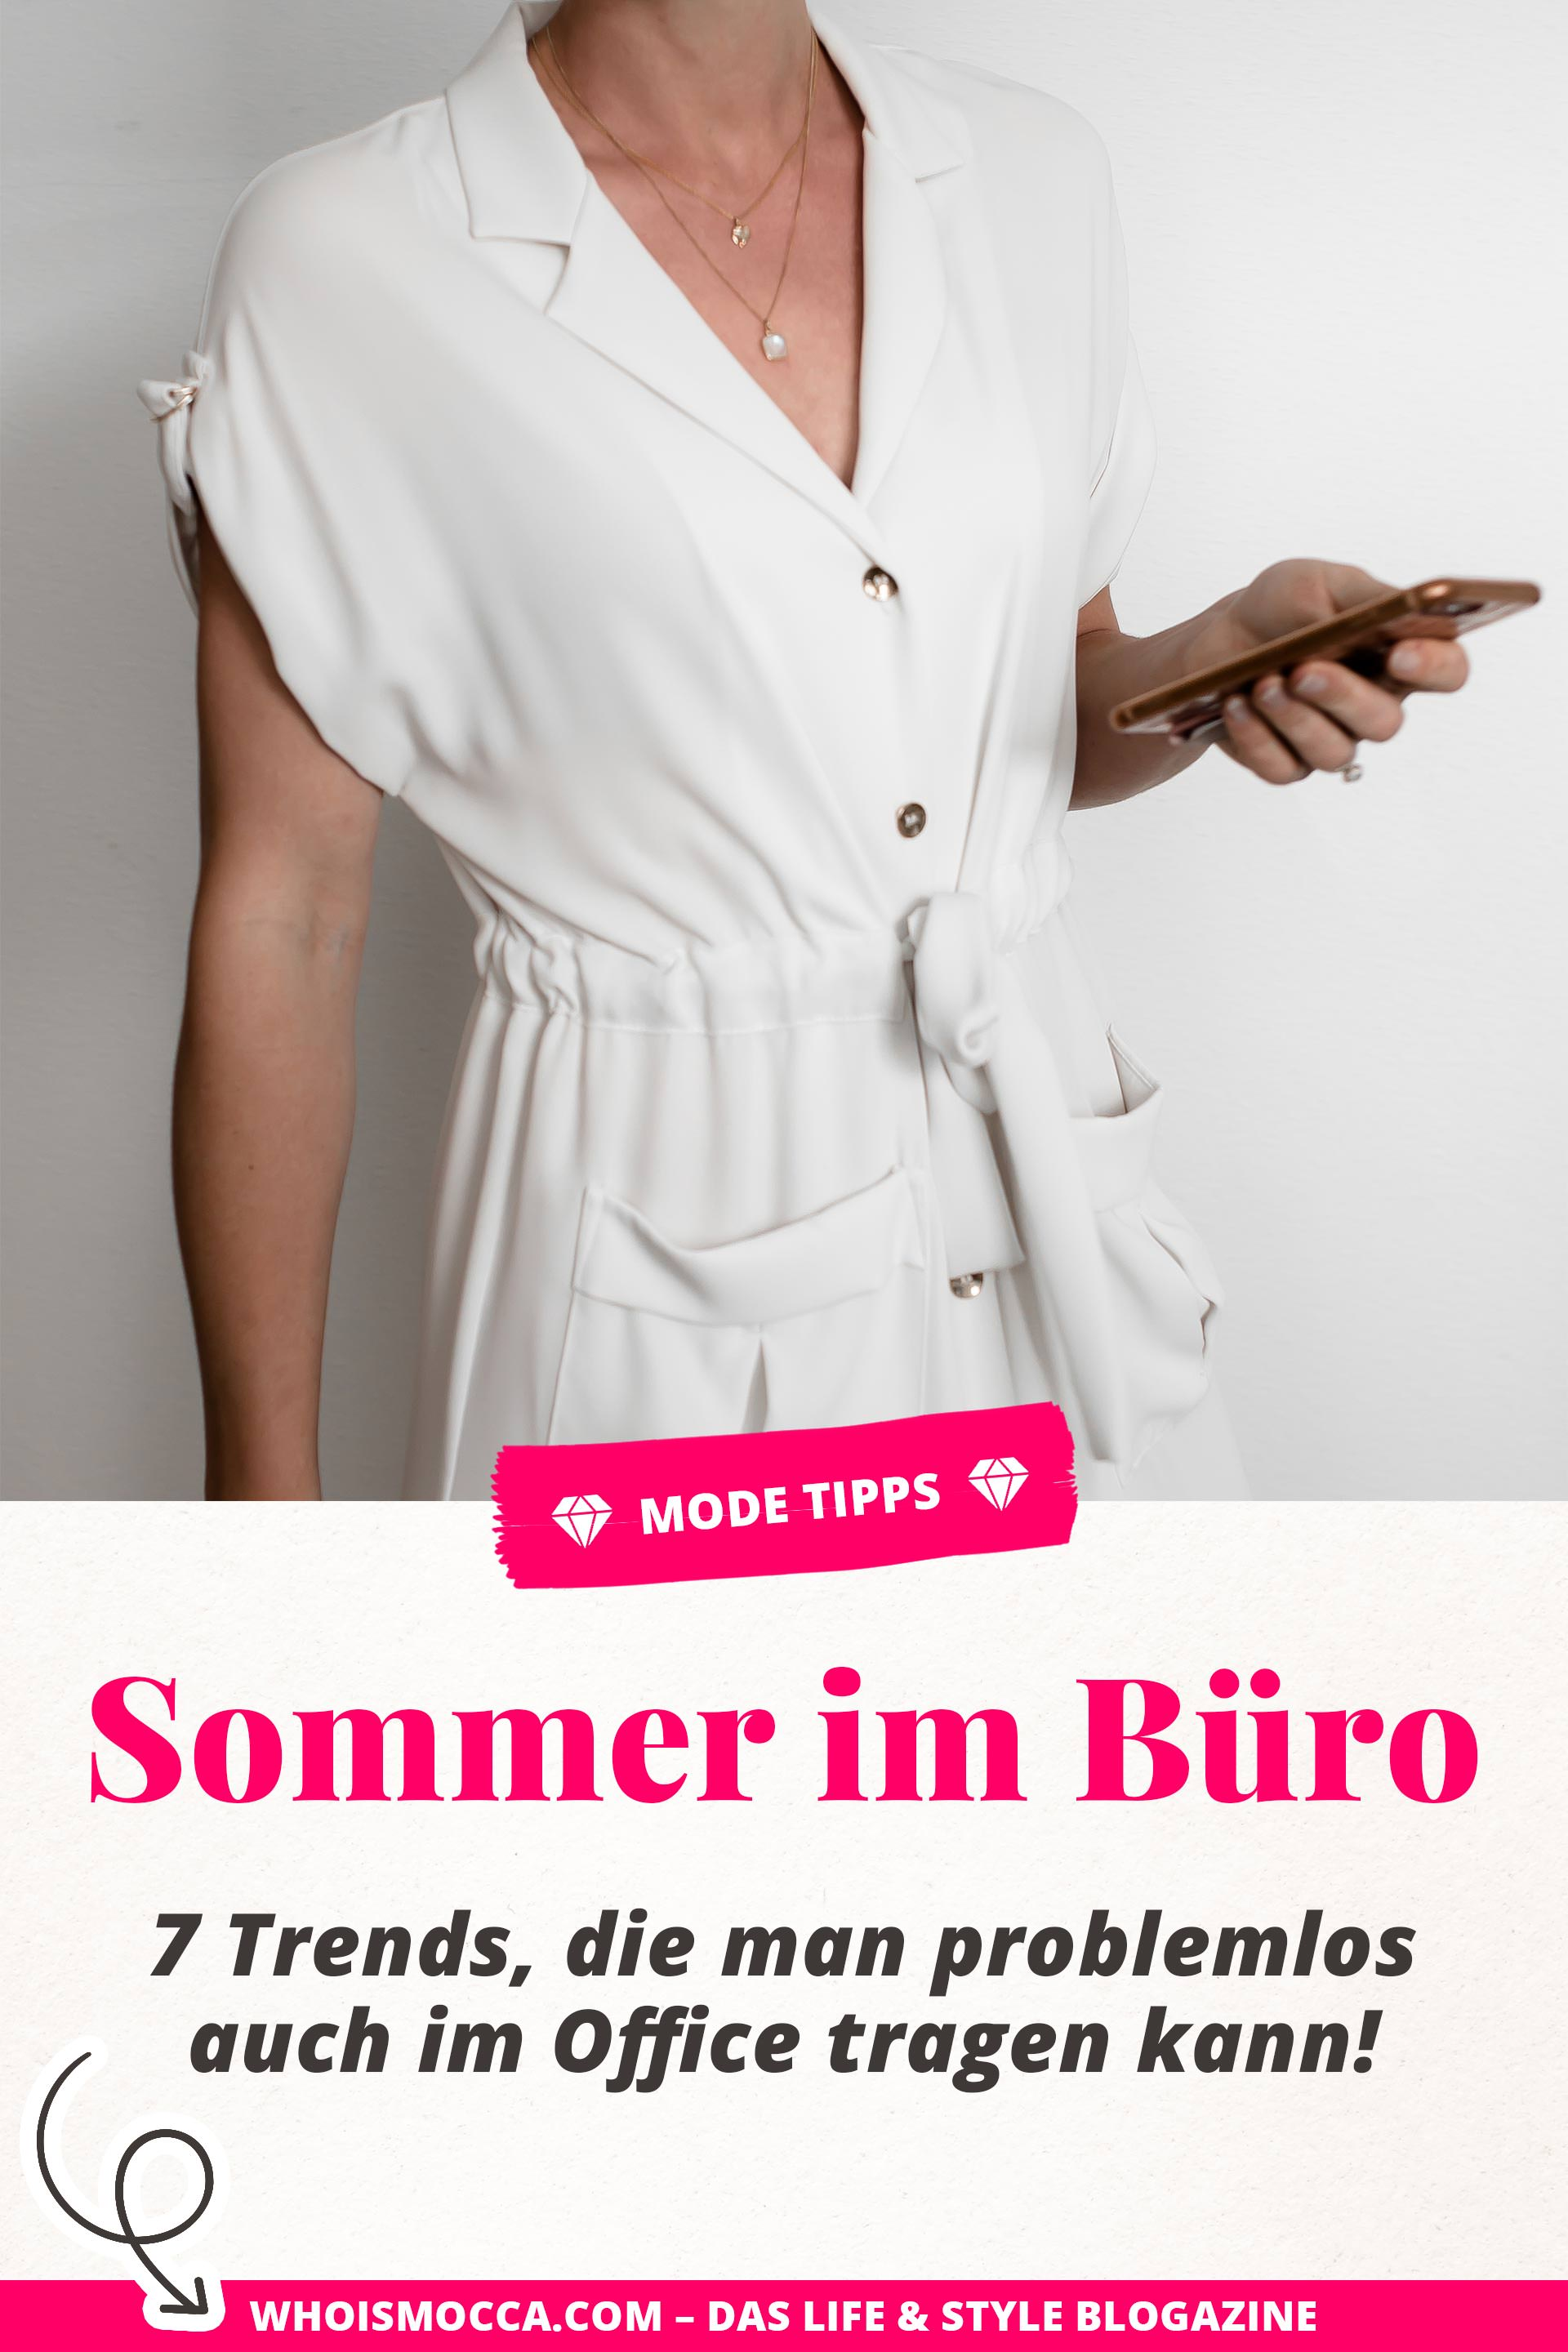 Mode-Sommer im Büro, Die besten Trends für das Büro Outfit im Sommer, Was ziehe ich im Sommer im Büro an, Sommermode 2018, Mode und Styling-Tipps, Business Outfits, Office Looks, #ootd #officestyle #businesswardrobe #wardrobe #fashiontrends #modeblogger #officestyle, www.whoismocca.com